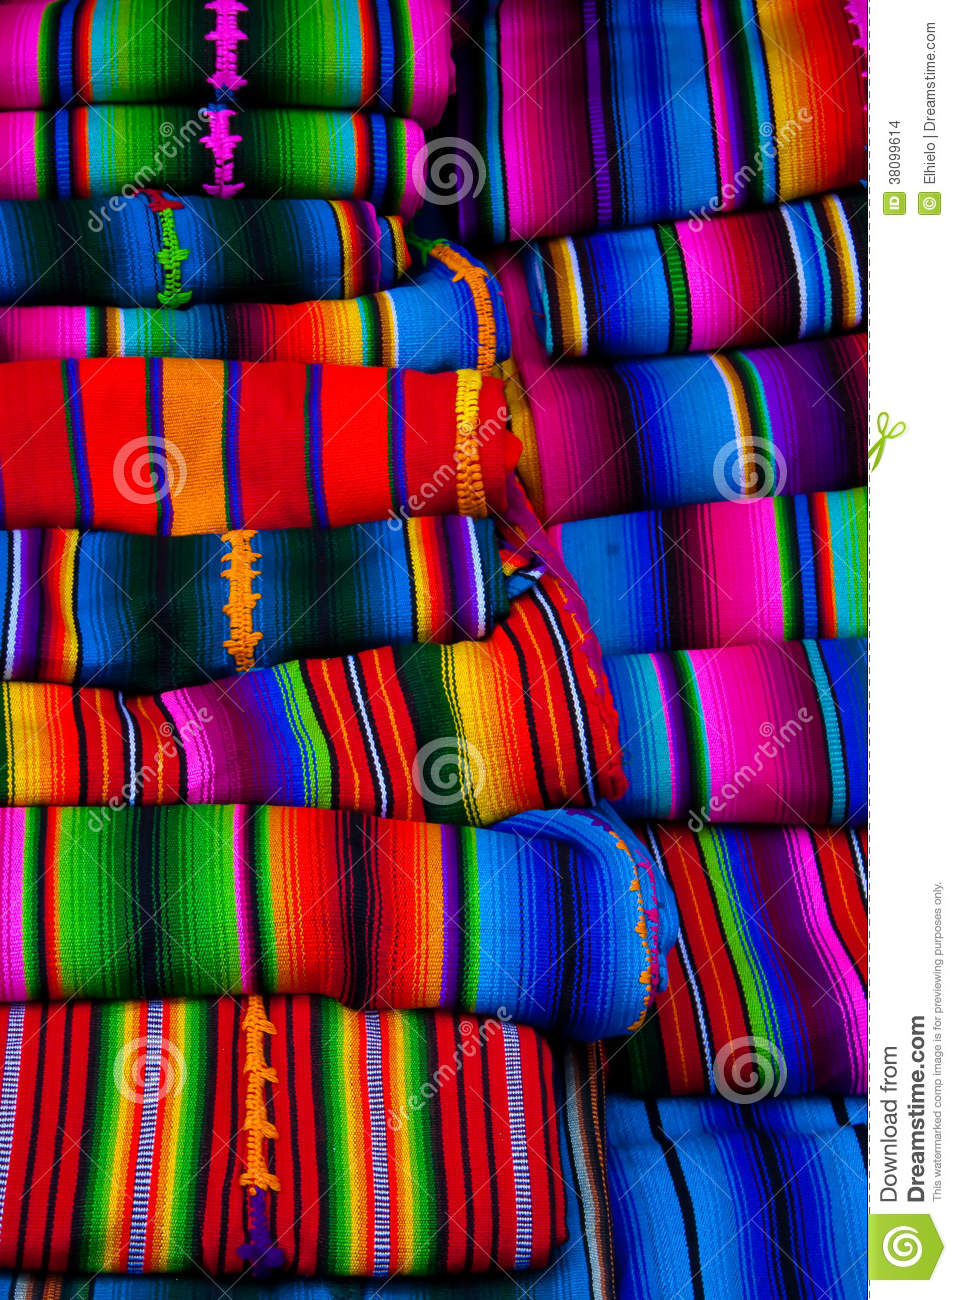 mayan blankets textile designs on the market in chichicastenango stock photo image 38099614. Black Bedroom Furniture Sets. Home Design Ideas